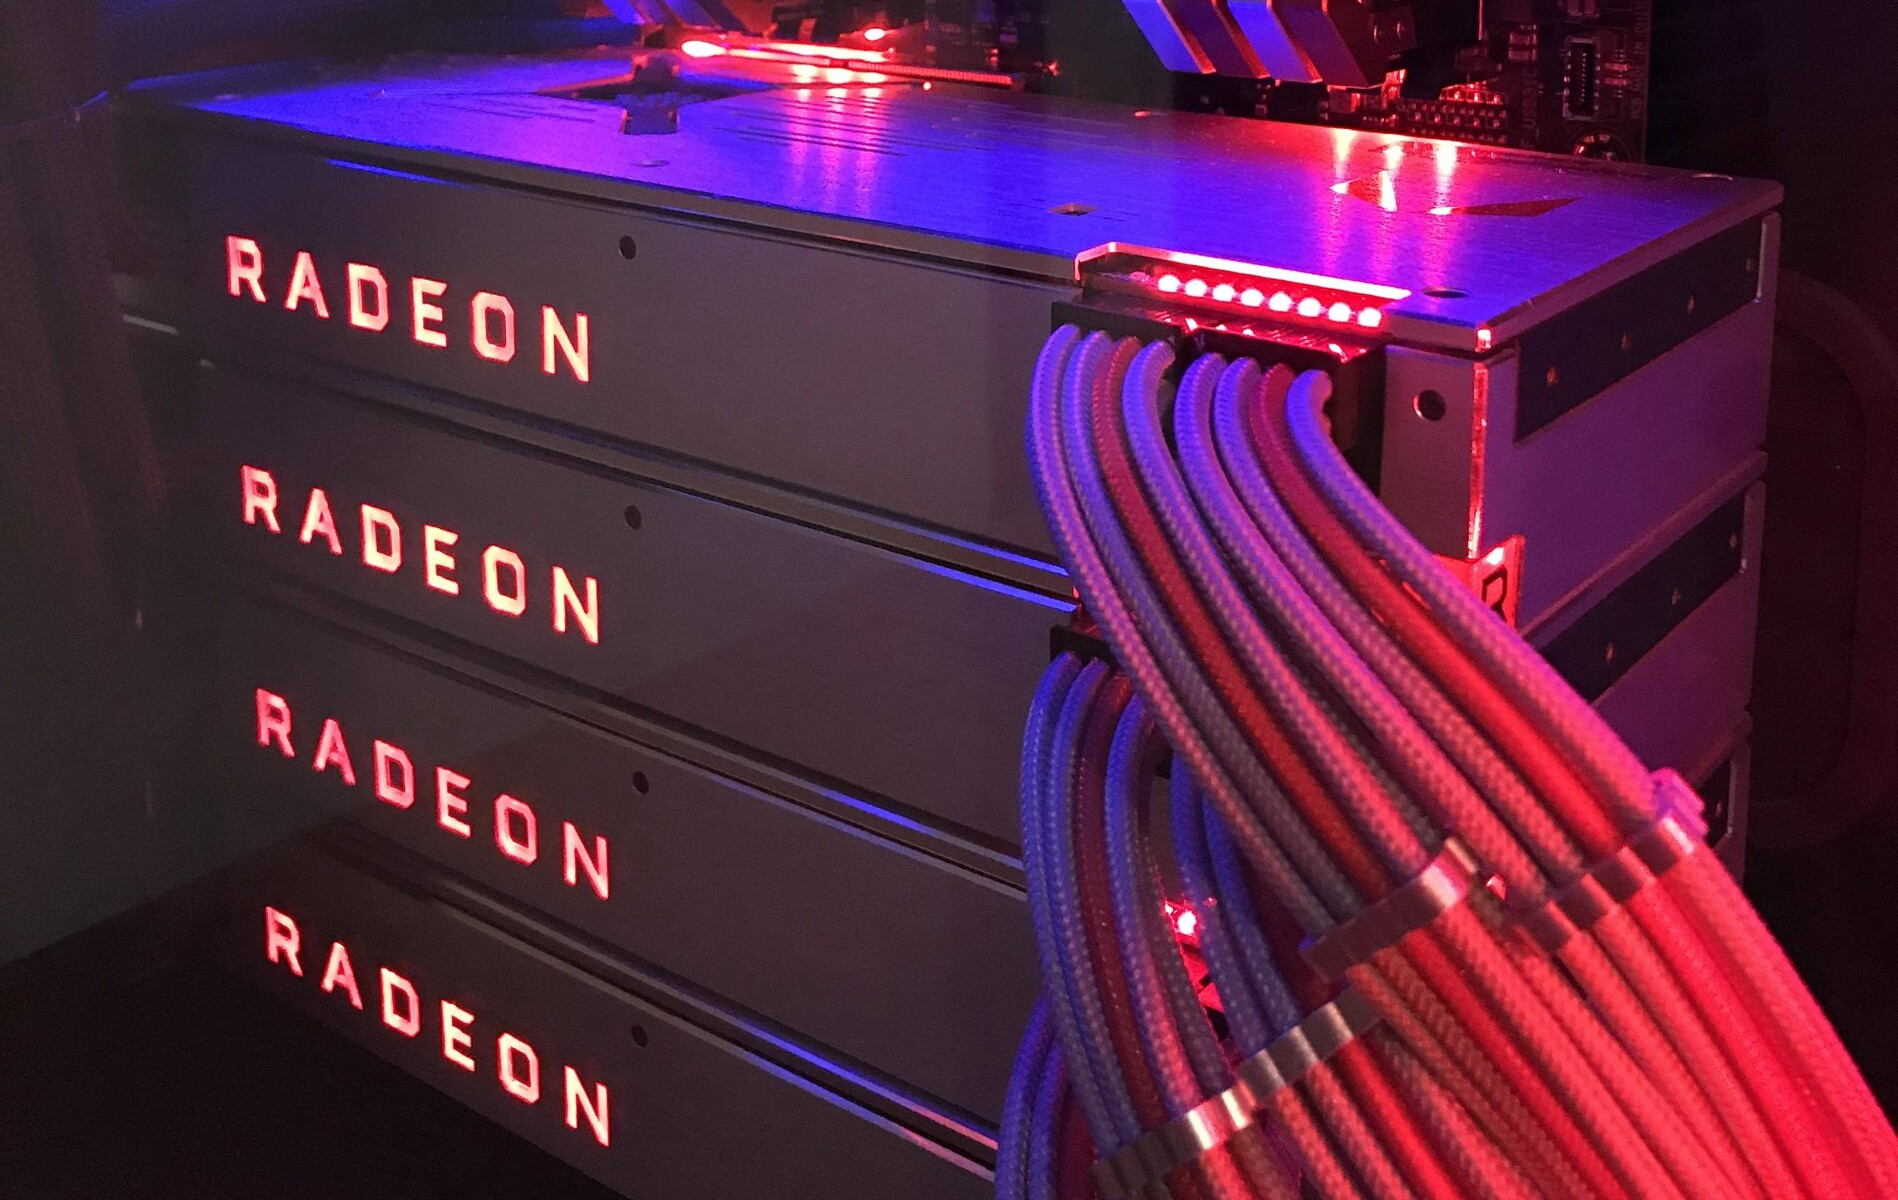 Amd Fan Amazes The Red Team With Custom Build Pc Featuring Four Radeon Rx Vega 64 Lc Graphics Cards Notebookcheck Net News